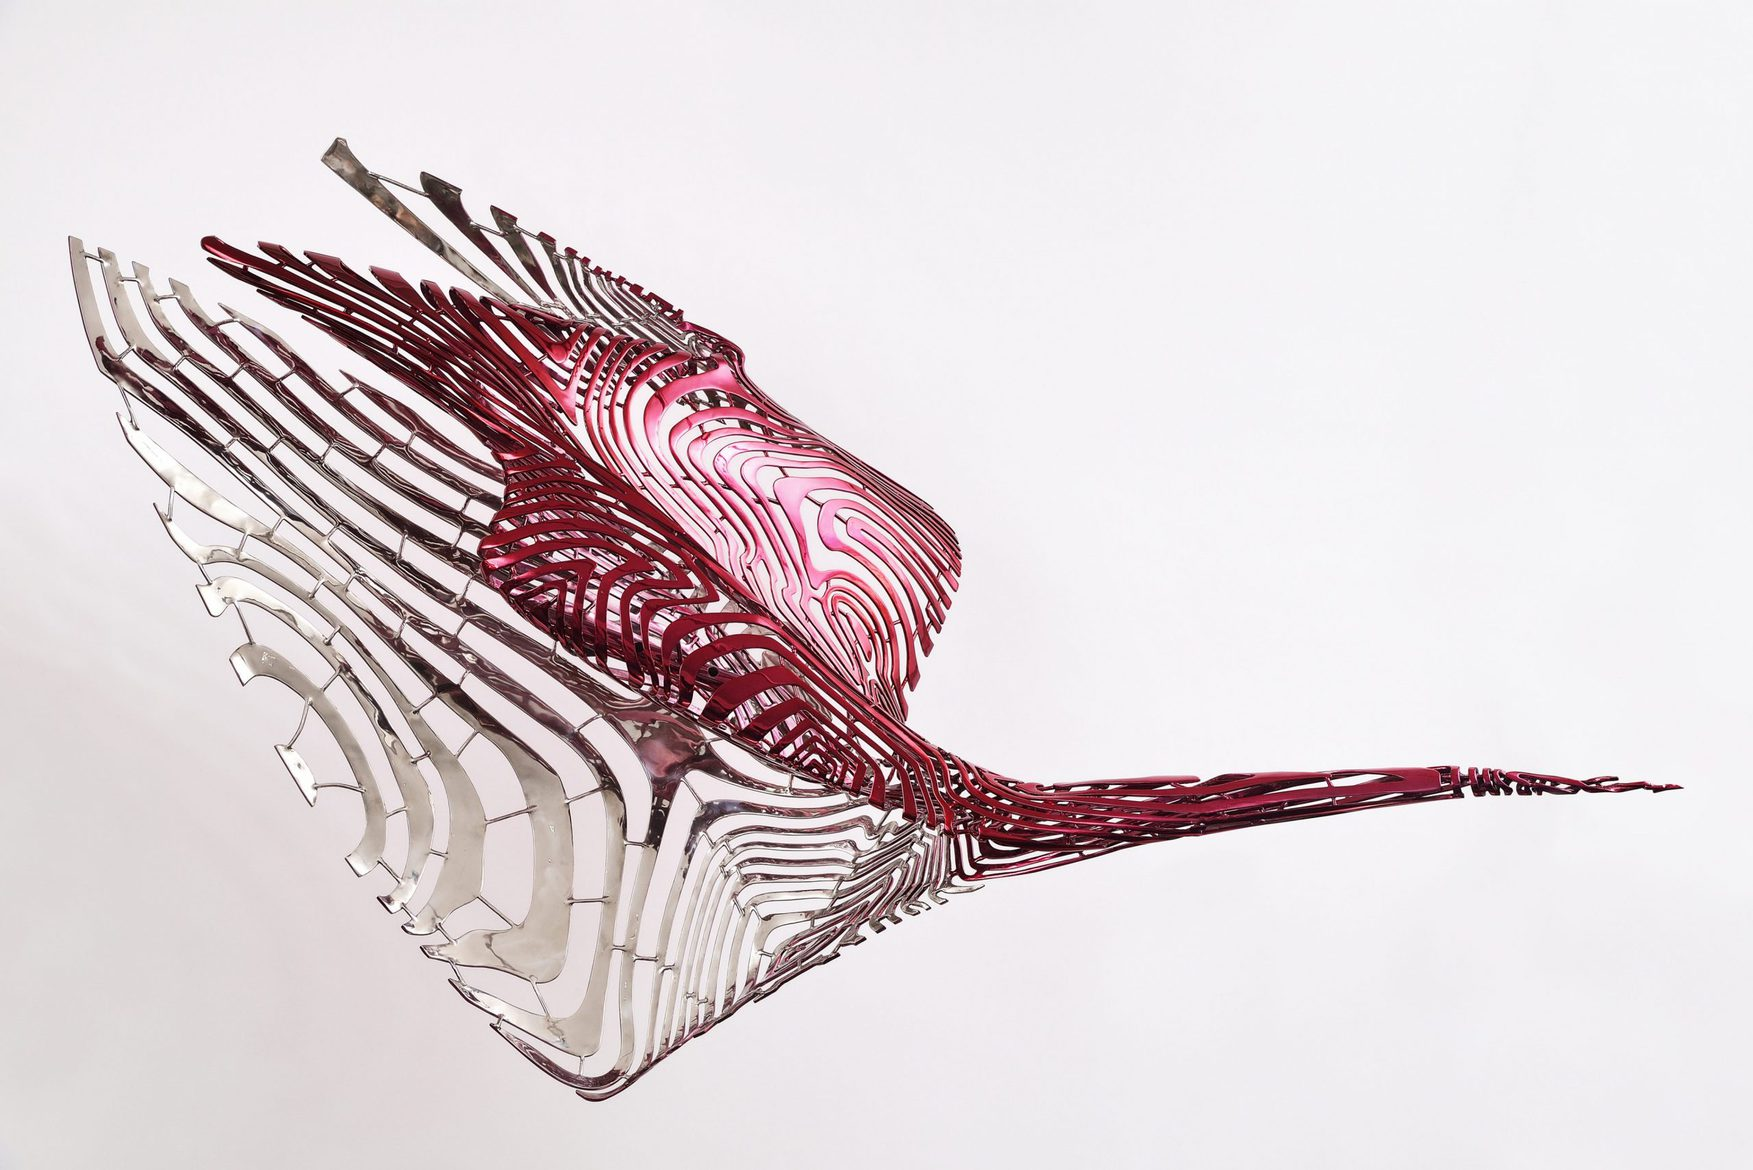 'Come to the Edge 2', 2012, stainless steel, red fluoropolymer, 96 x 161 x 49 cm, edition 1 of 5 + 1AP